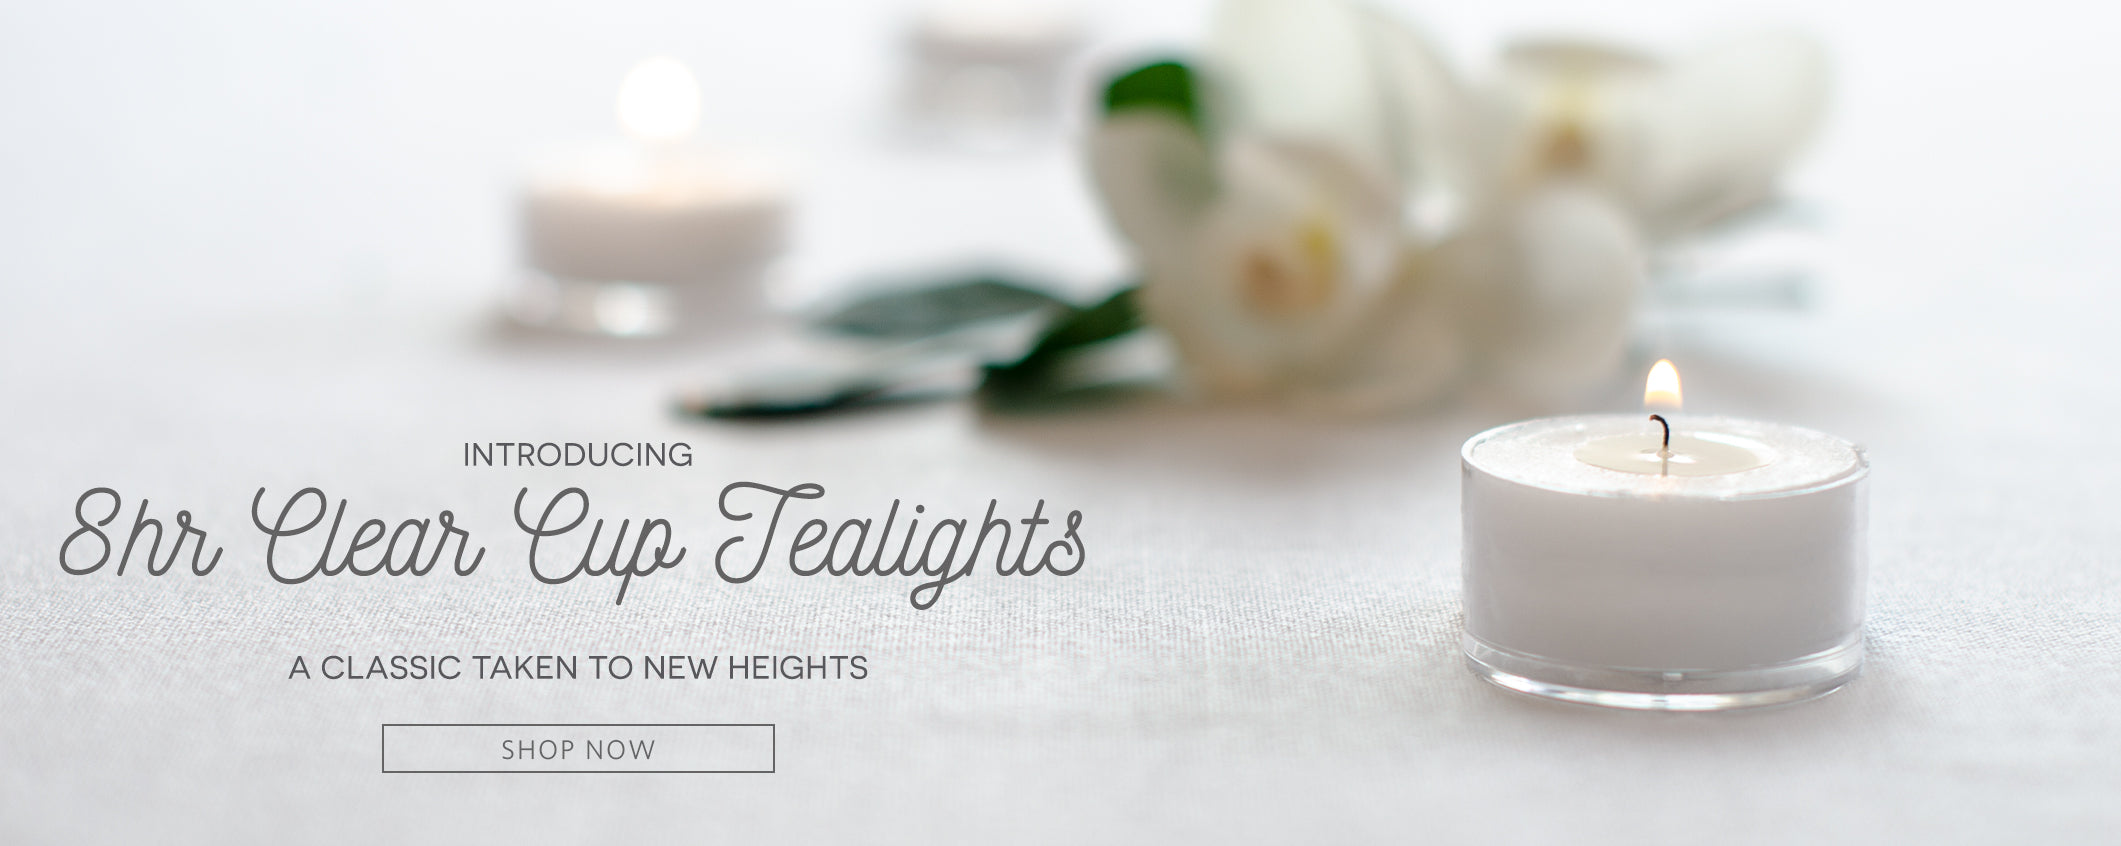 Introducing 8hr Clear Cup Tealights! A classic taken to new heights.